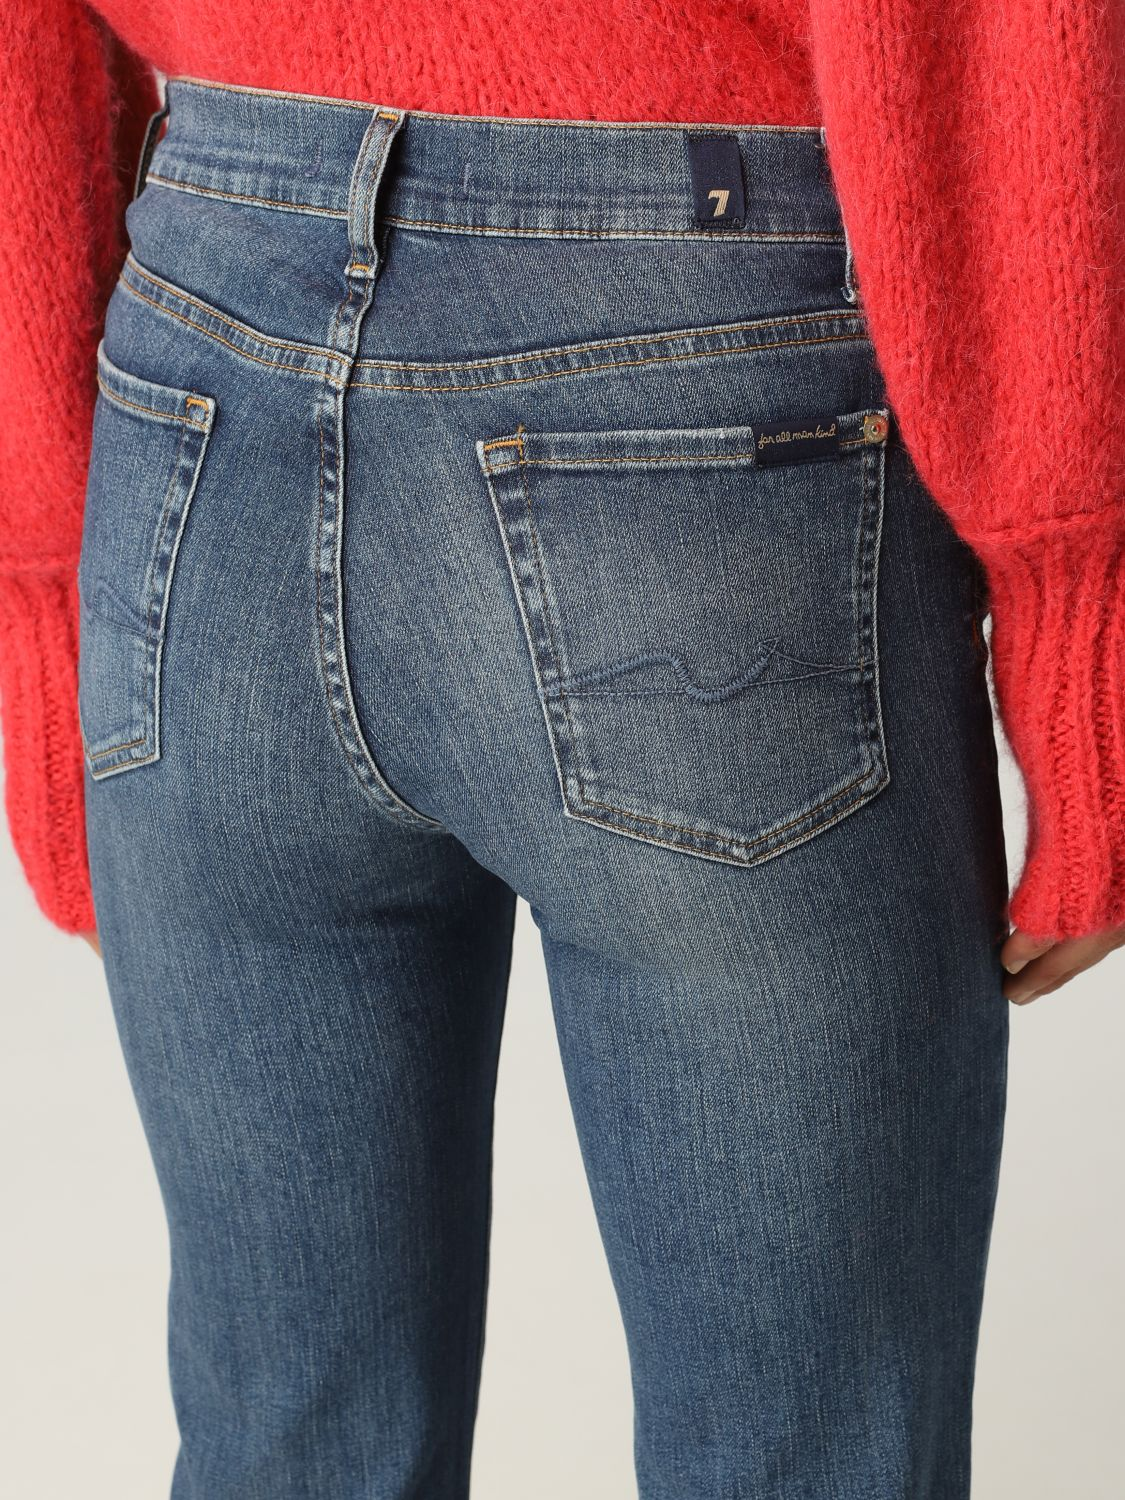 Jeans 7 For All Mankind: Jeans donna 7 For All Mankind blue 3